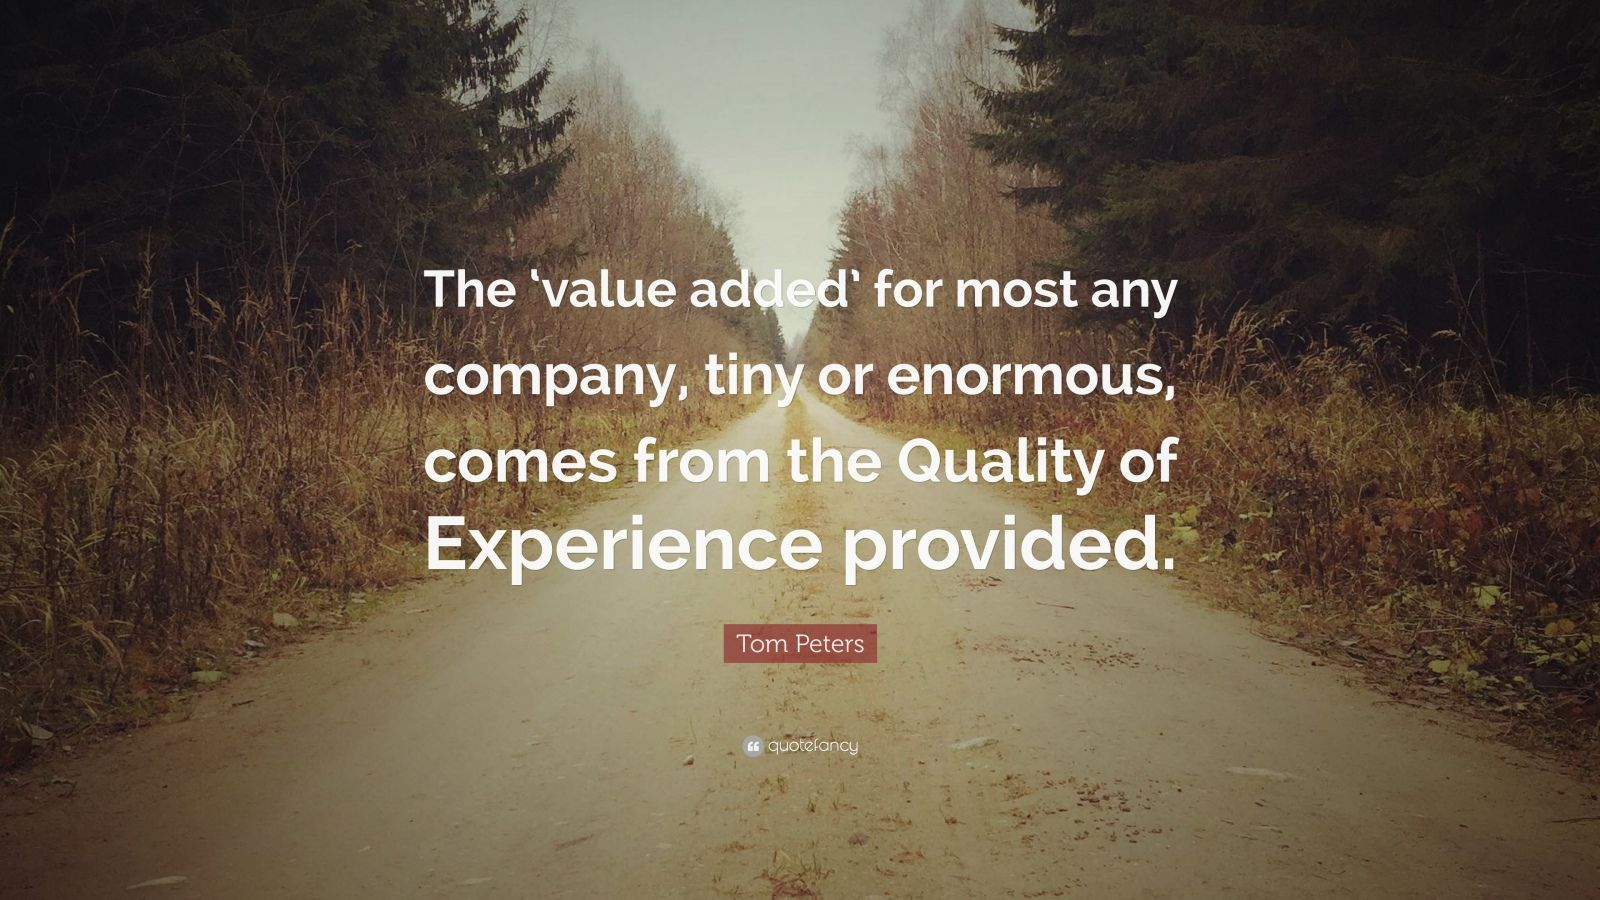 """Tom Peters Quote: """"The 'value added' for most any company, tiny or enormous, comes from the Quality of Experience provided."""""""